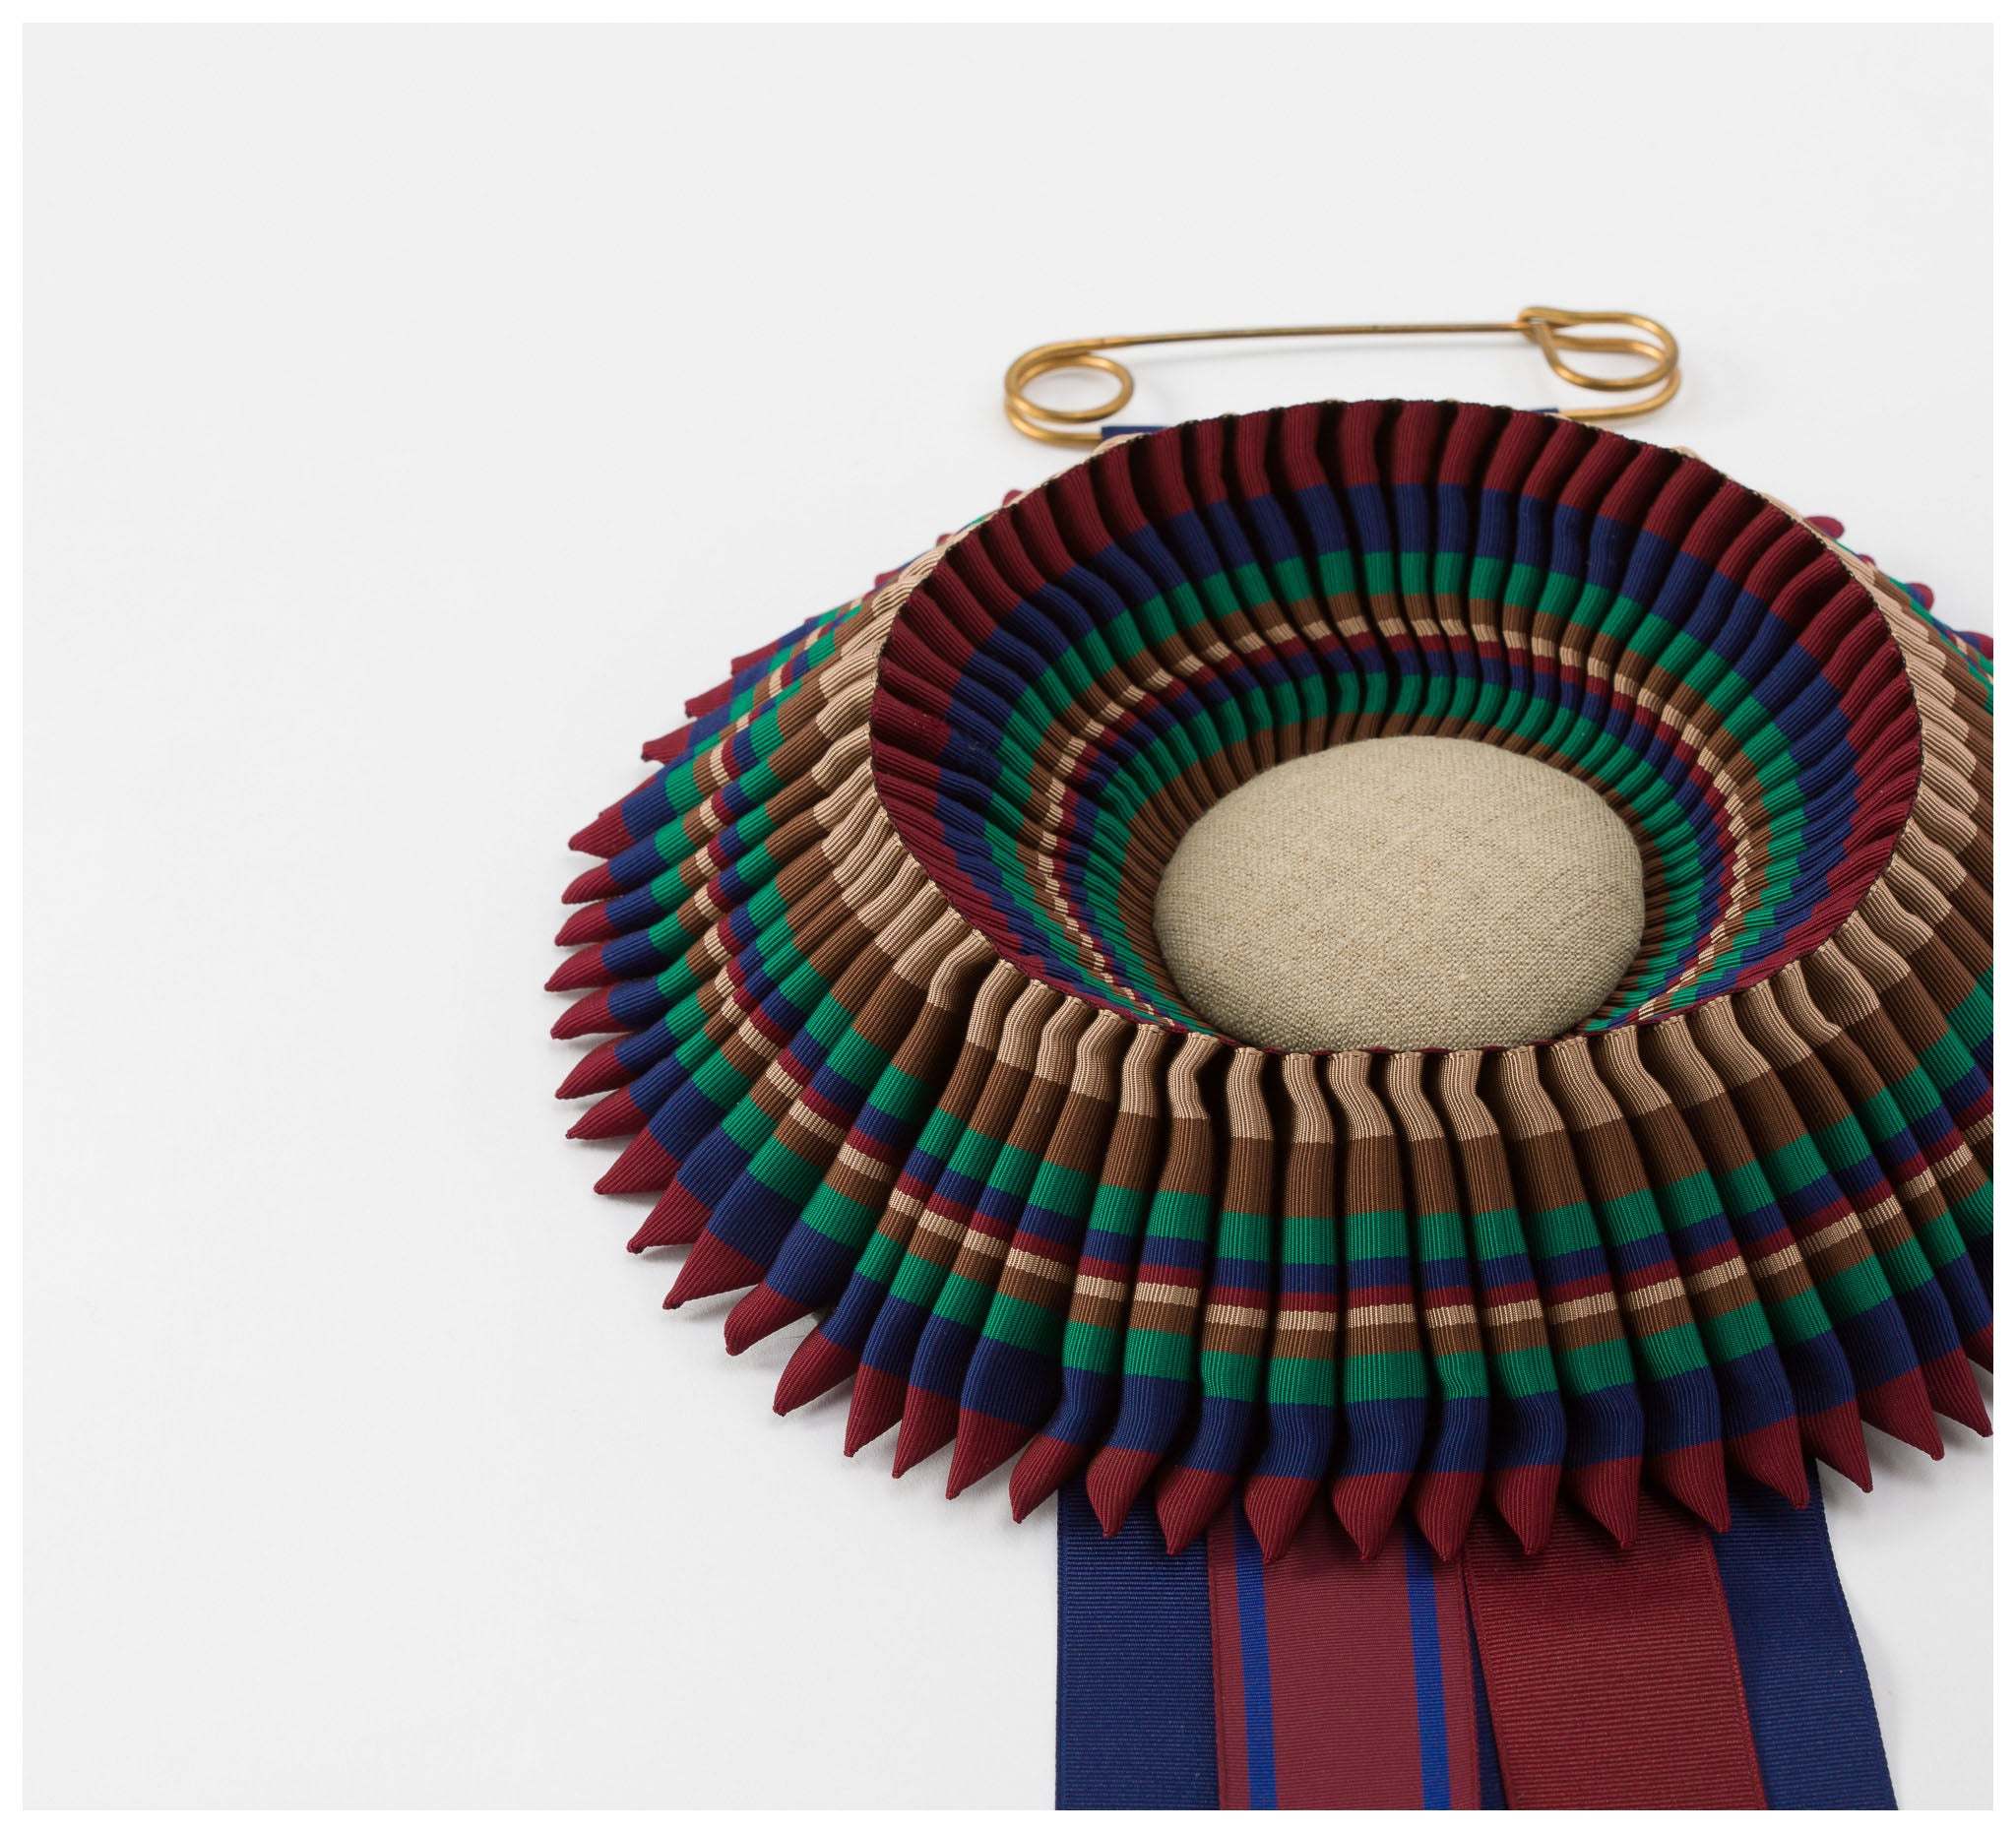 Skinny Wolf - Burgundy, Blue, Green and Brown Striped Rosette - Large